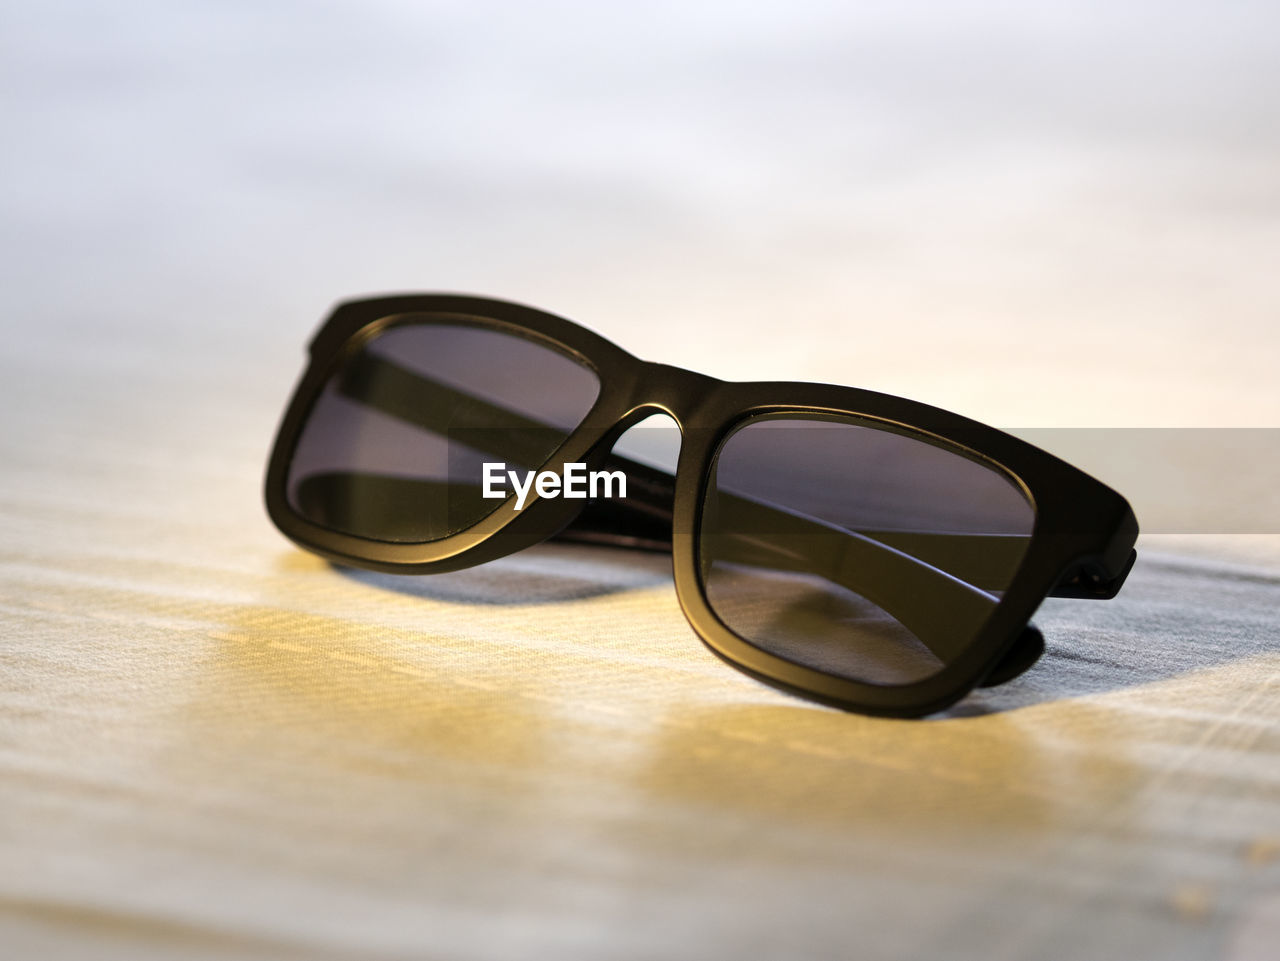 glasses, eyeglasses, sunglasses, fashion, transparent, personal accessory, still life, table, glass - material, security, close-up, no people, eyewear, protection, eyesight, selective focus, single object, reflection, focus on foreground, day, surface level